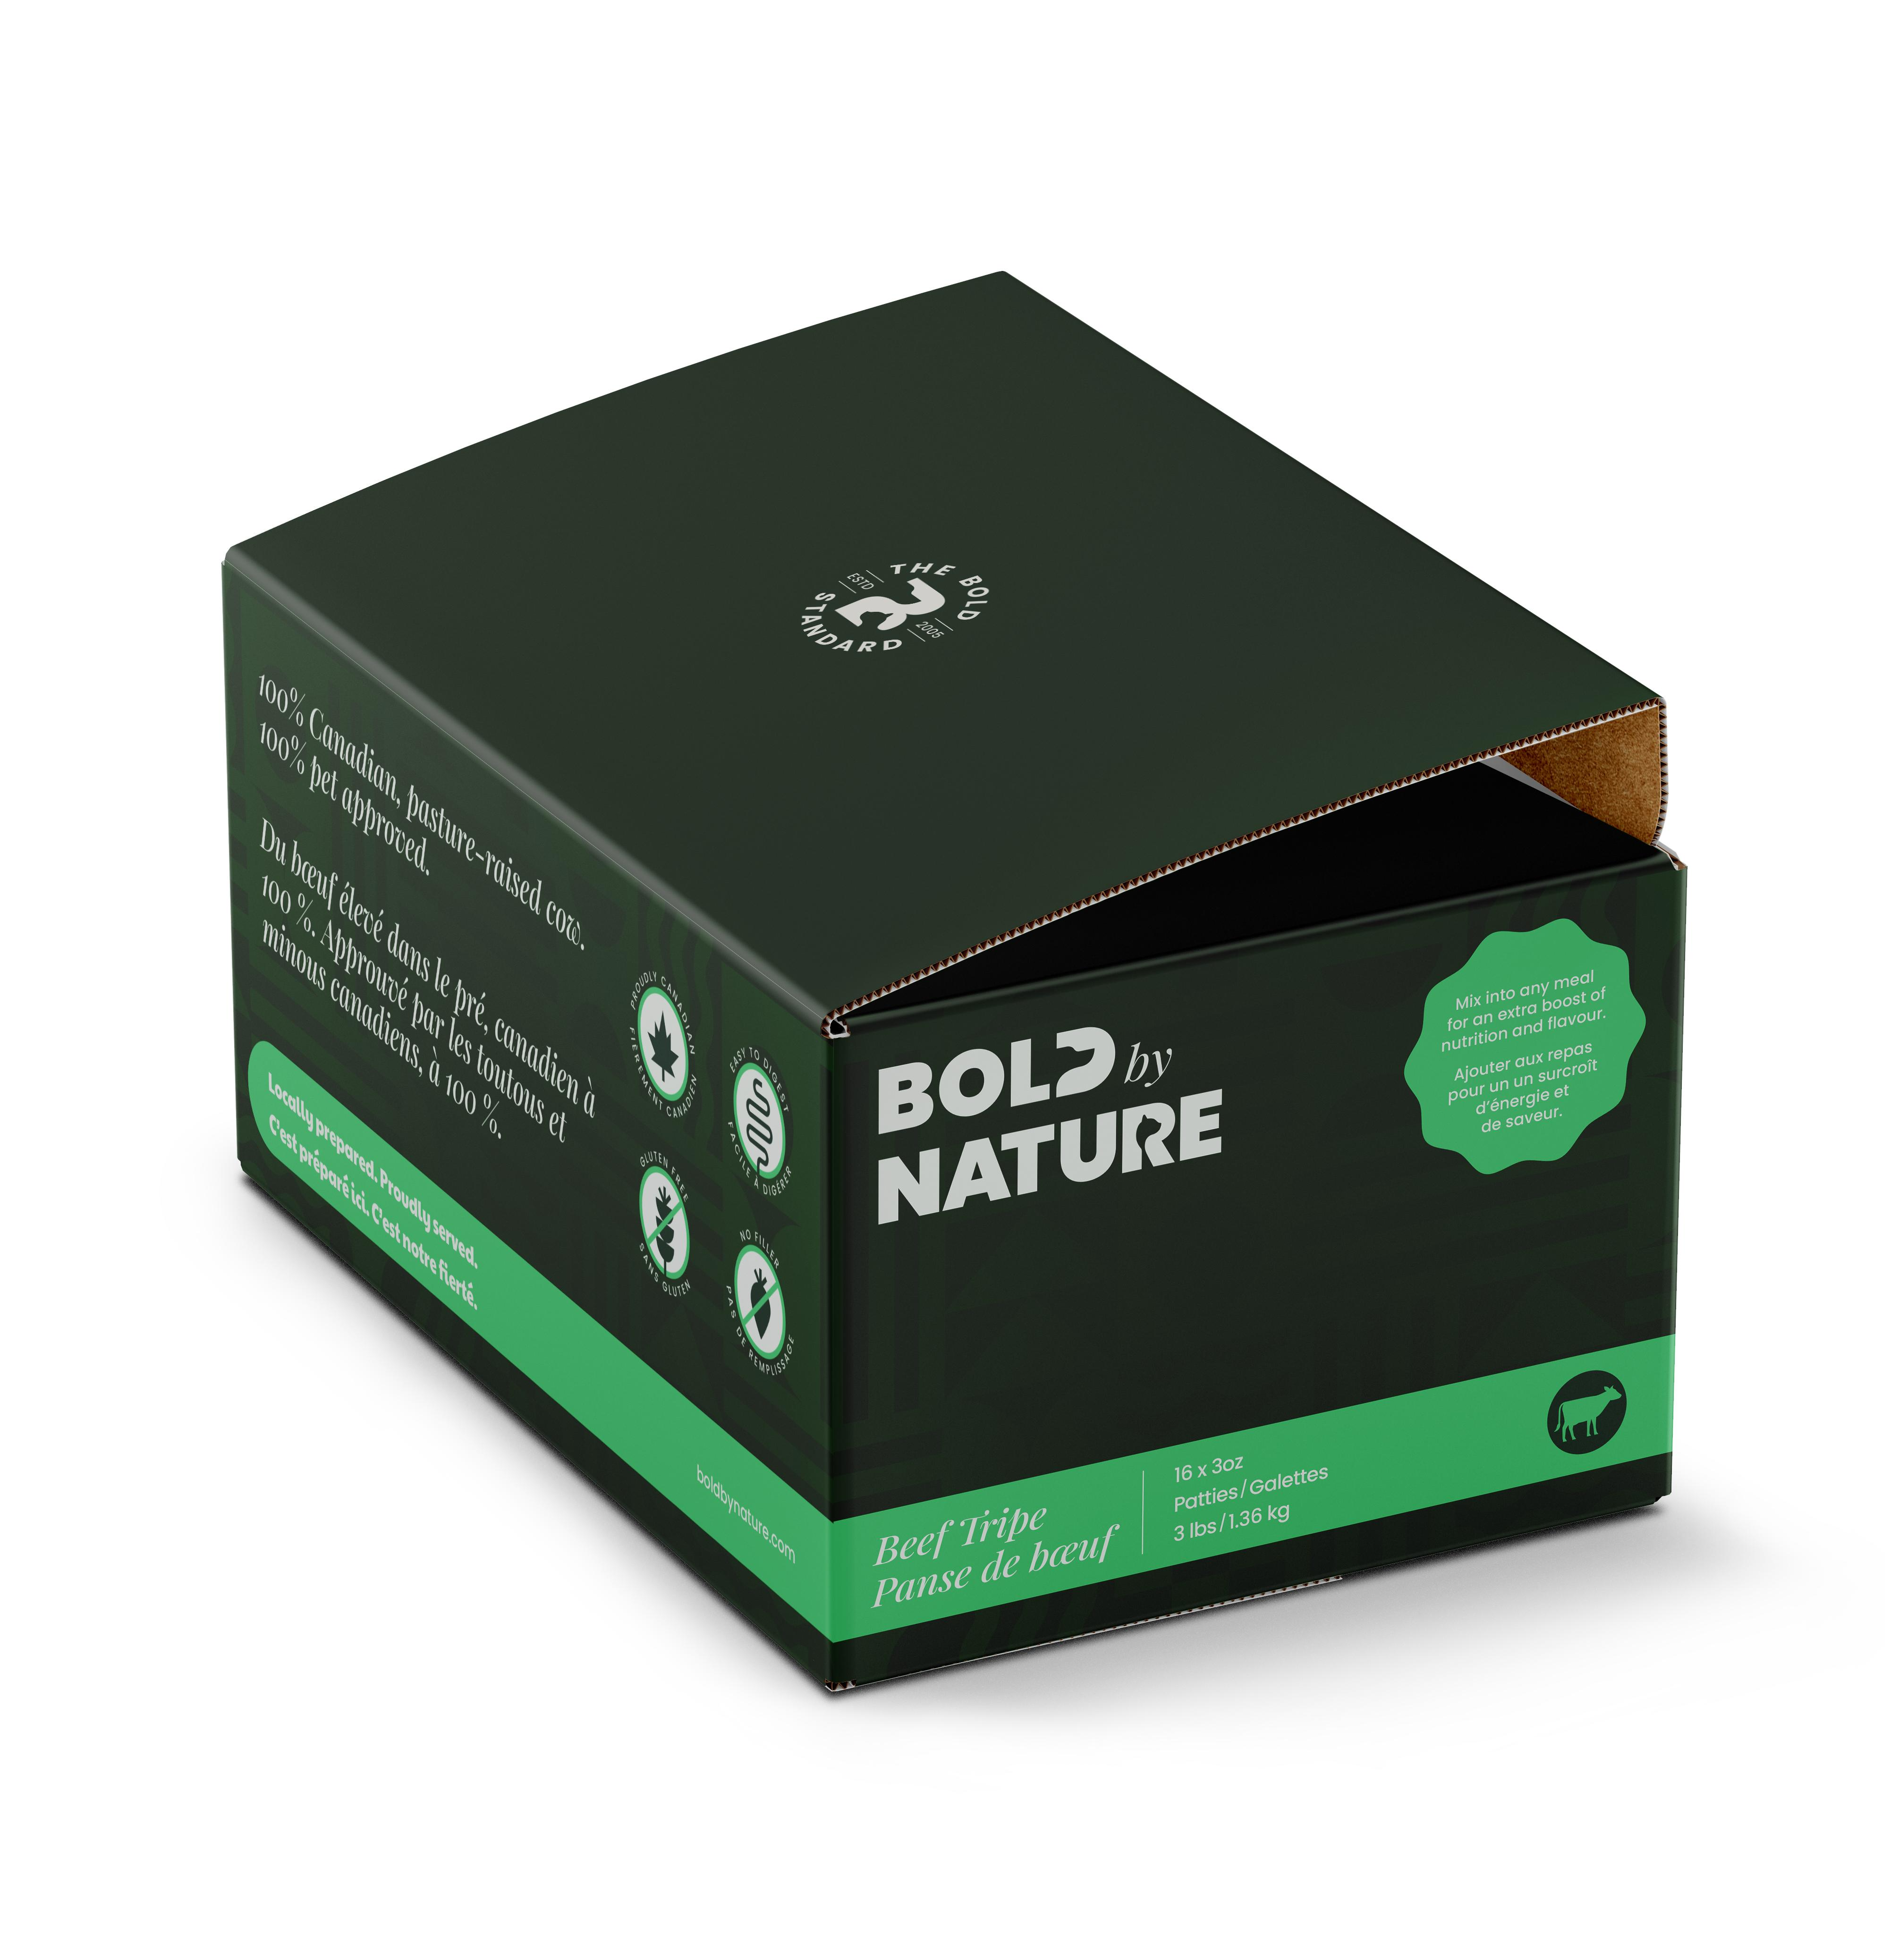 Bold by Nature Dog Beef Tripe Patties Dog Food Image